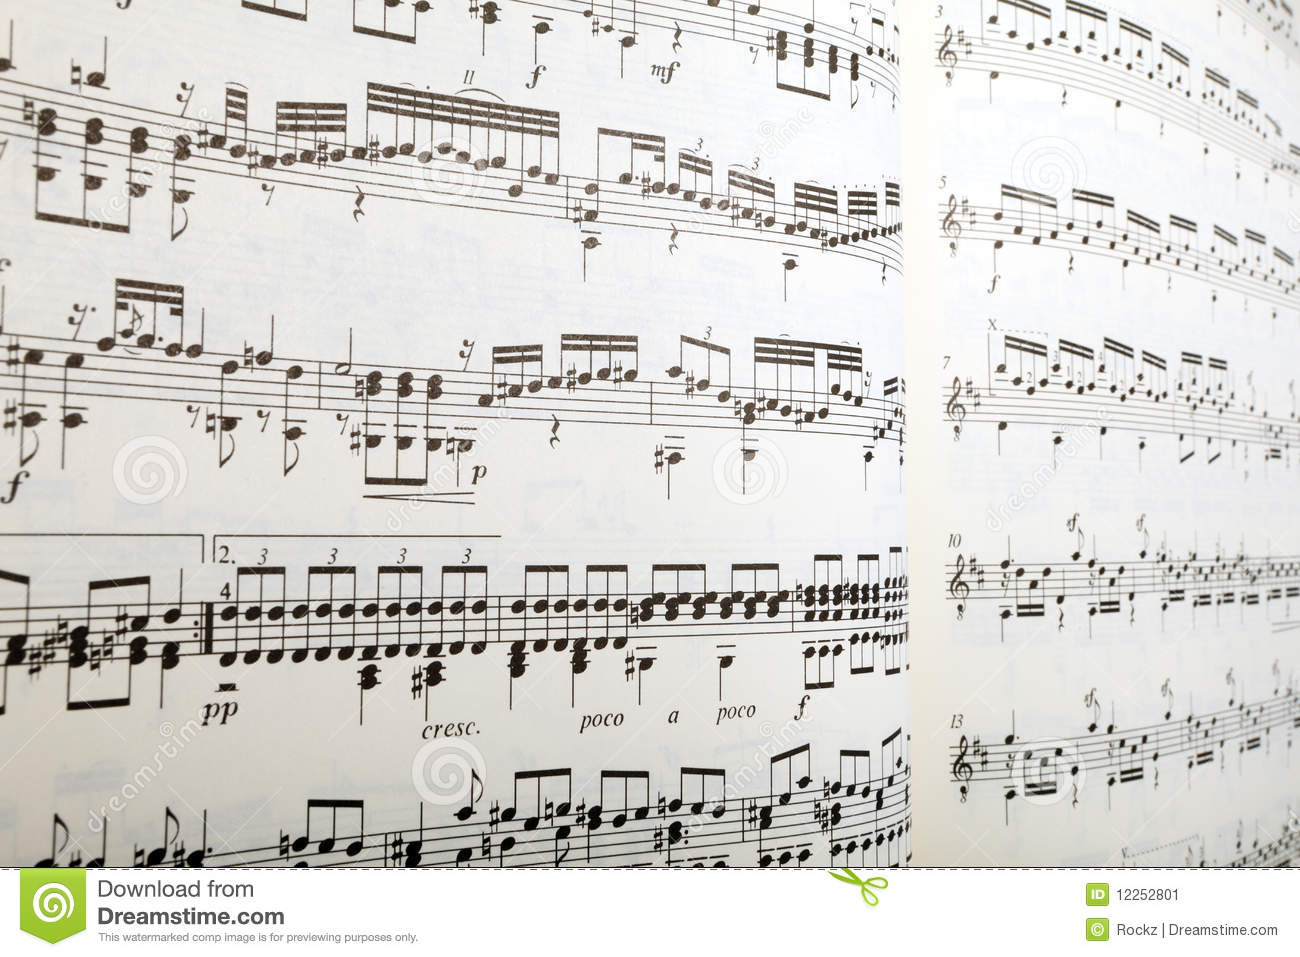 Sheet music in perspective